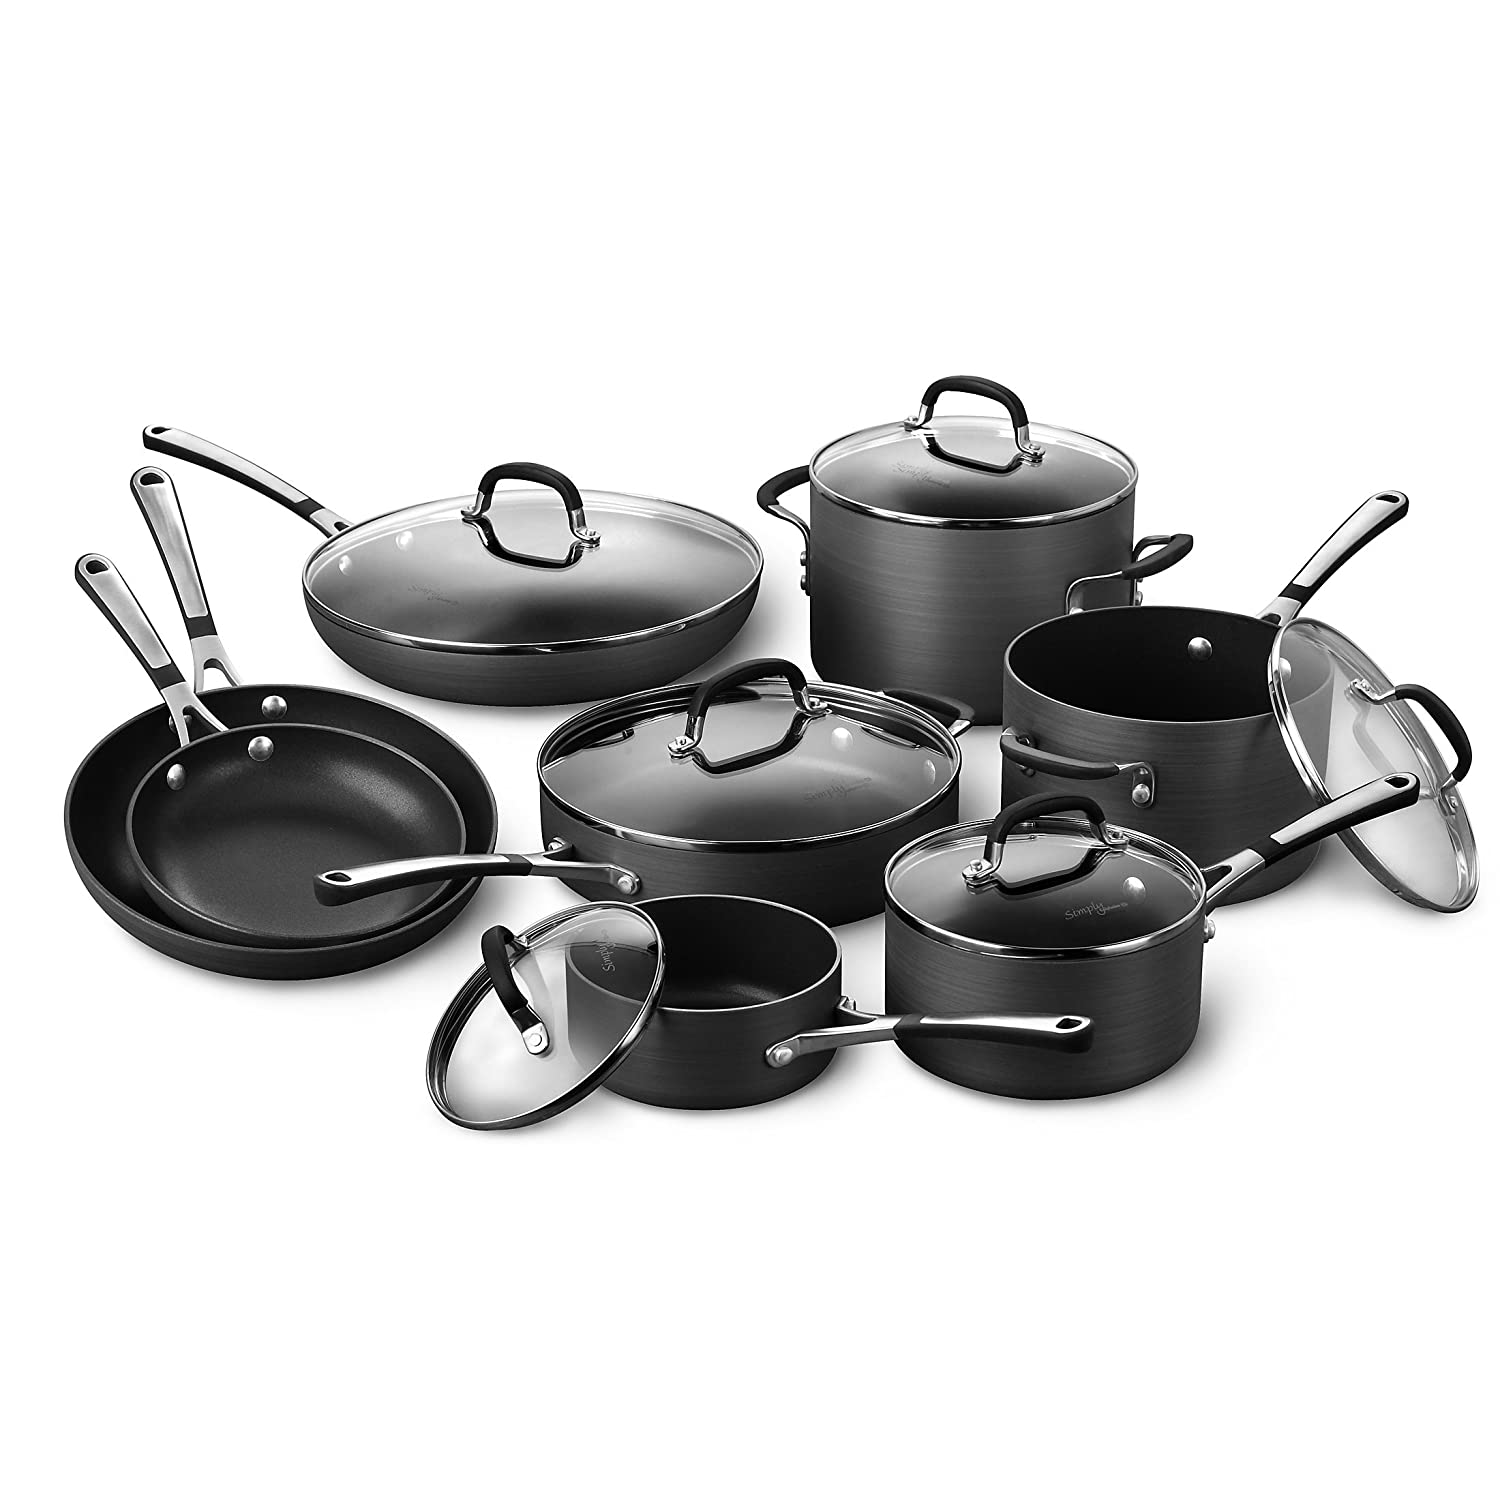 Amazoncom Simply Calphalon Nonstick 14 Piece Cookware Set